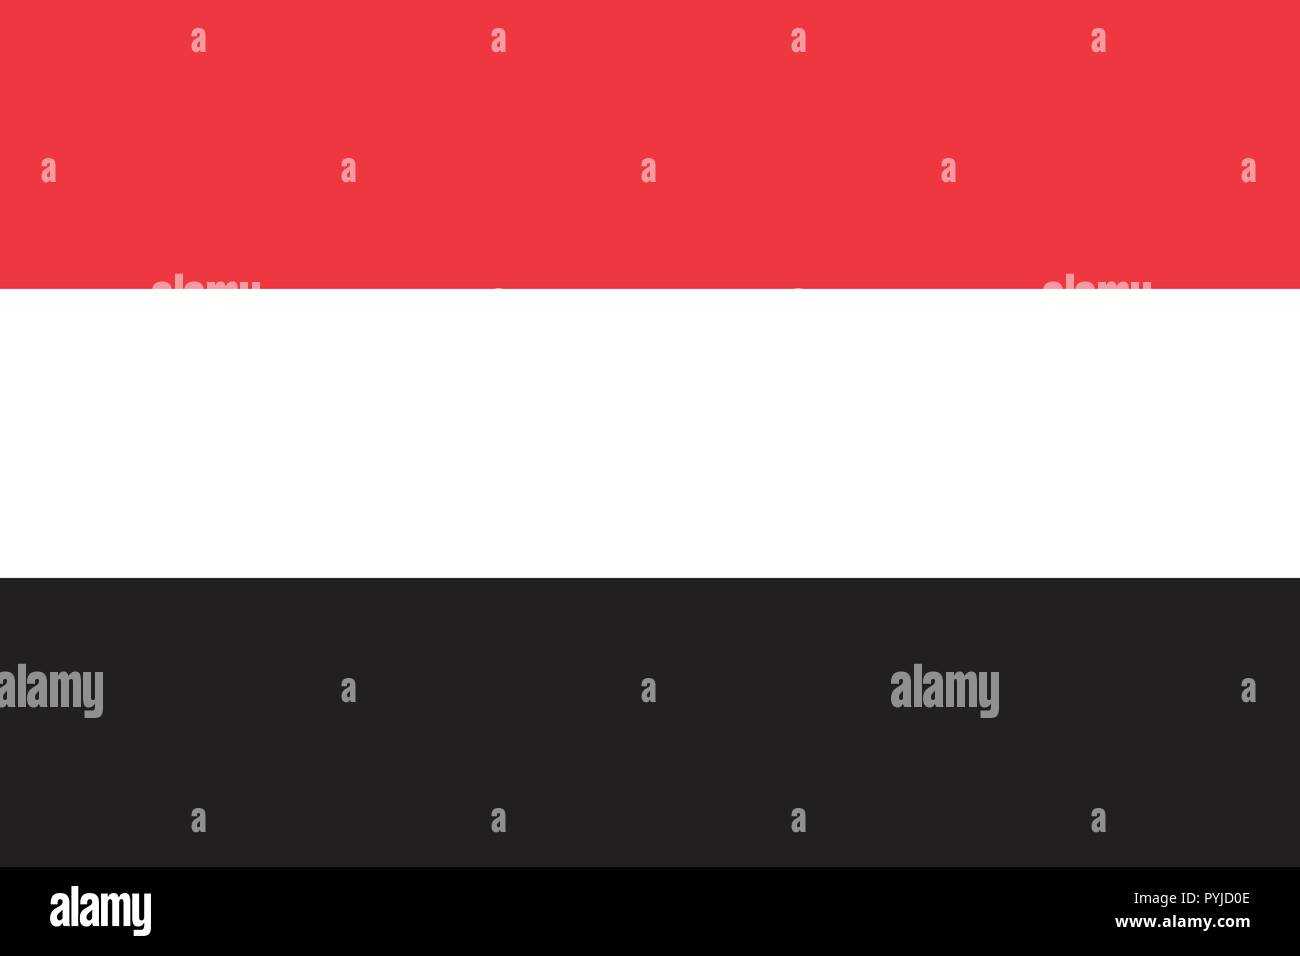 Vector image for Yemen flag. Based on the official and exact Yemeni flag dimensions (3:2) & colors (032C, White and Black) Stock Vector